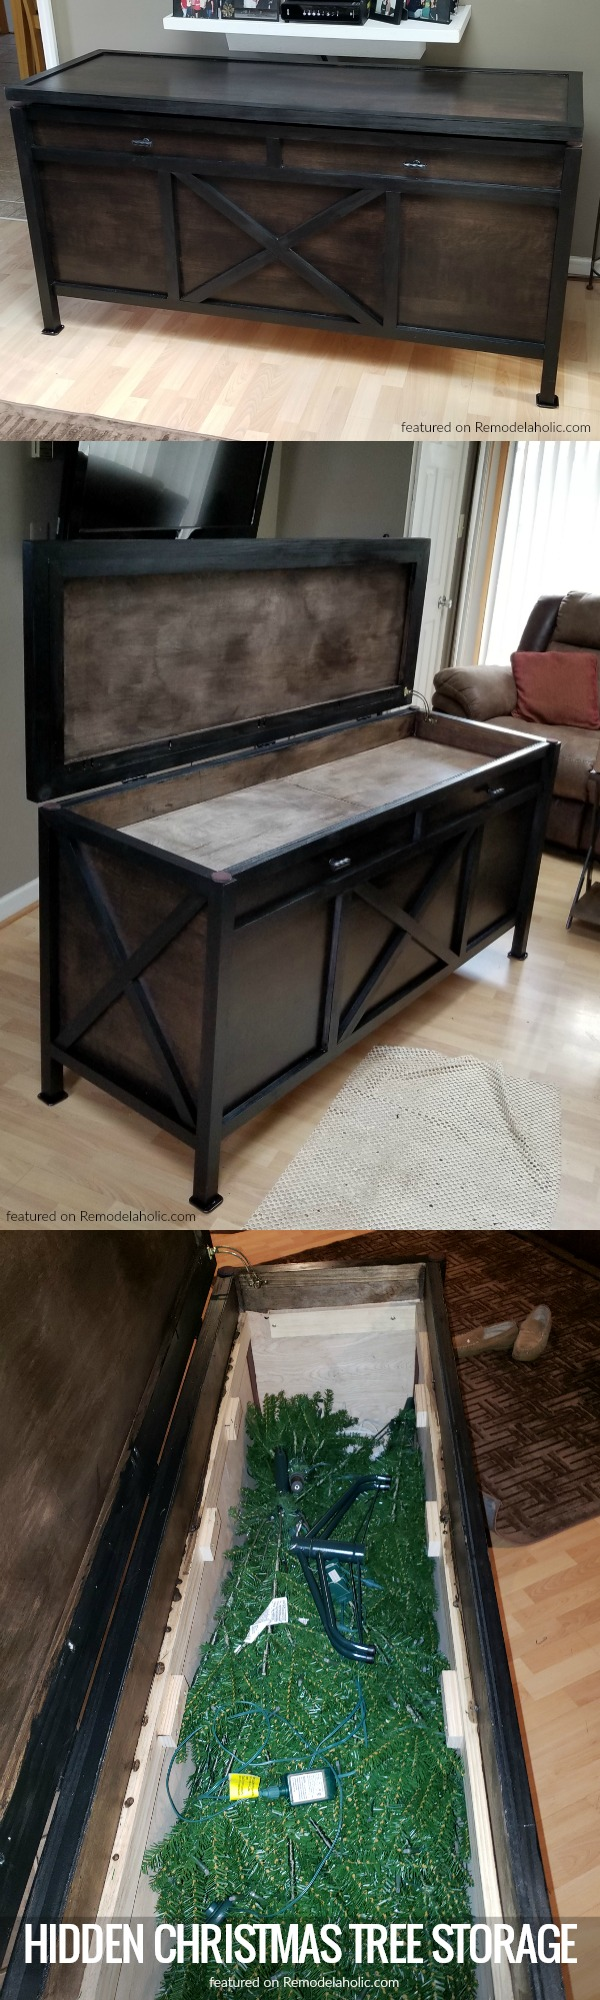 DIY Console With Hidden Christmas Tree Storage Compartment, Featured On #remodelaholic